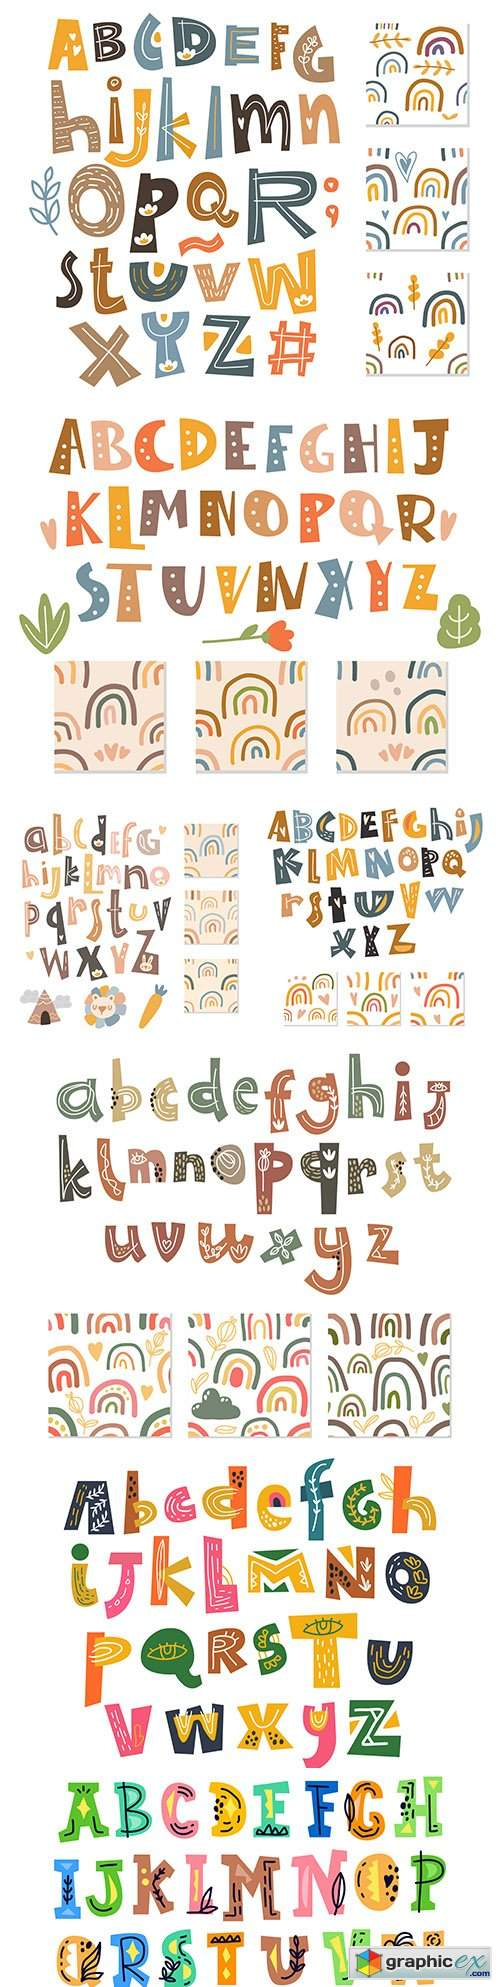 Scandinavian alphabet and seamless background set of elements